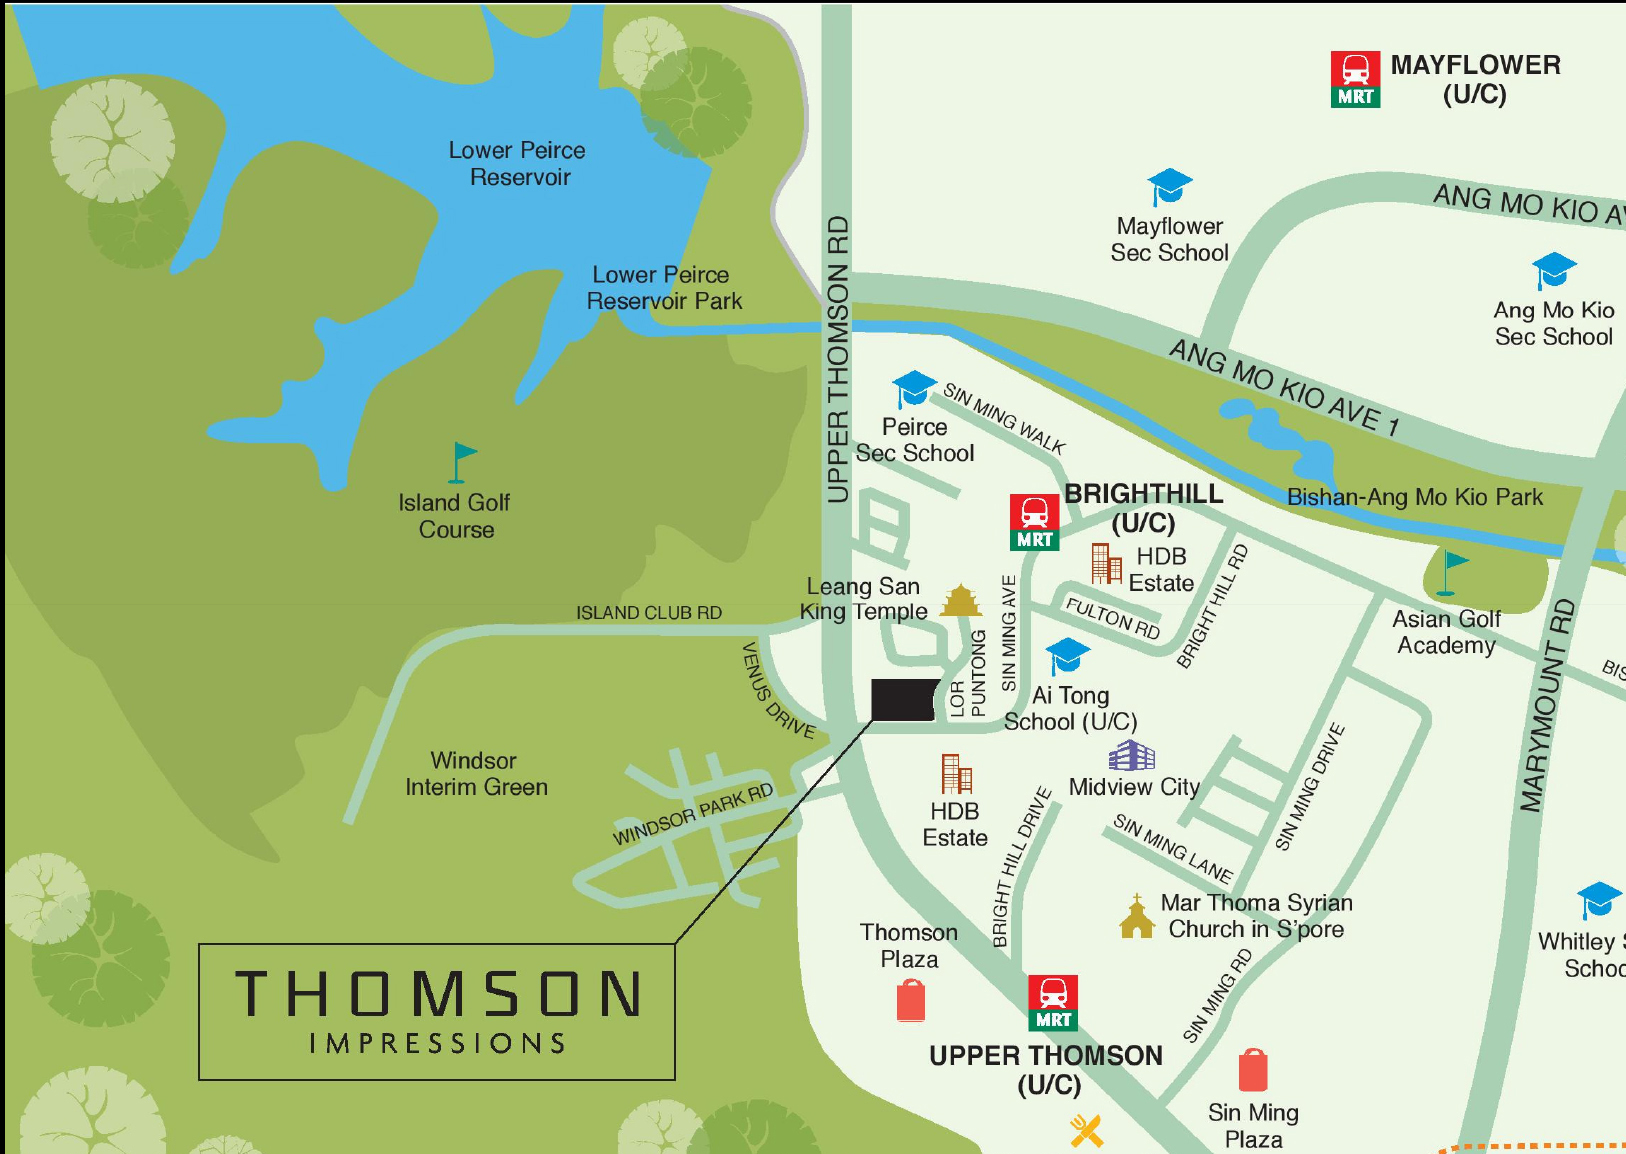 Thomsons Impressions Nature Park